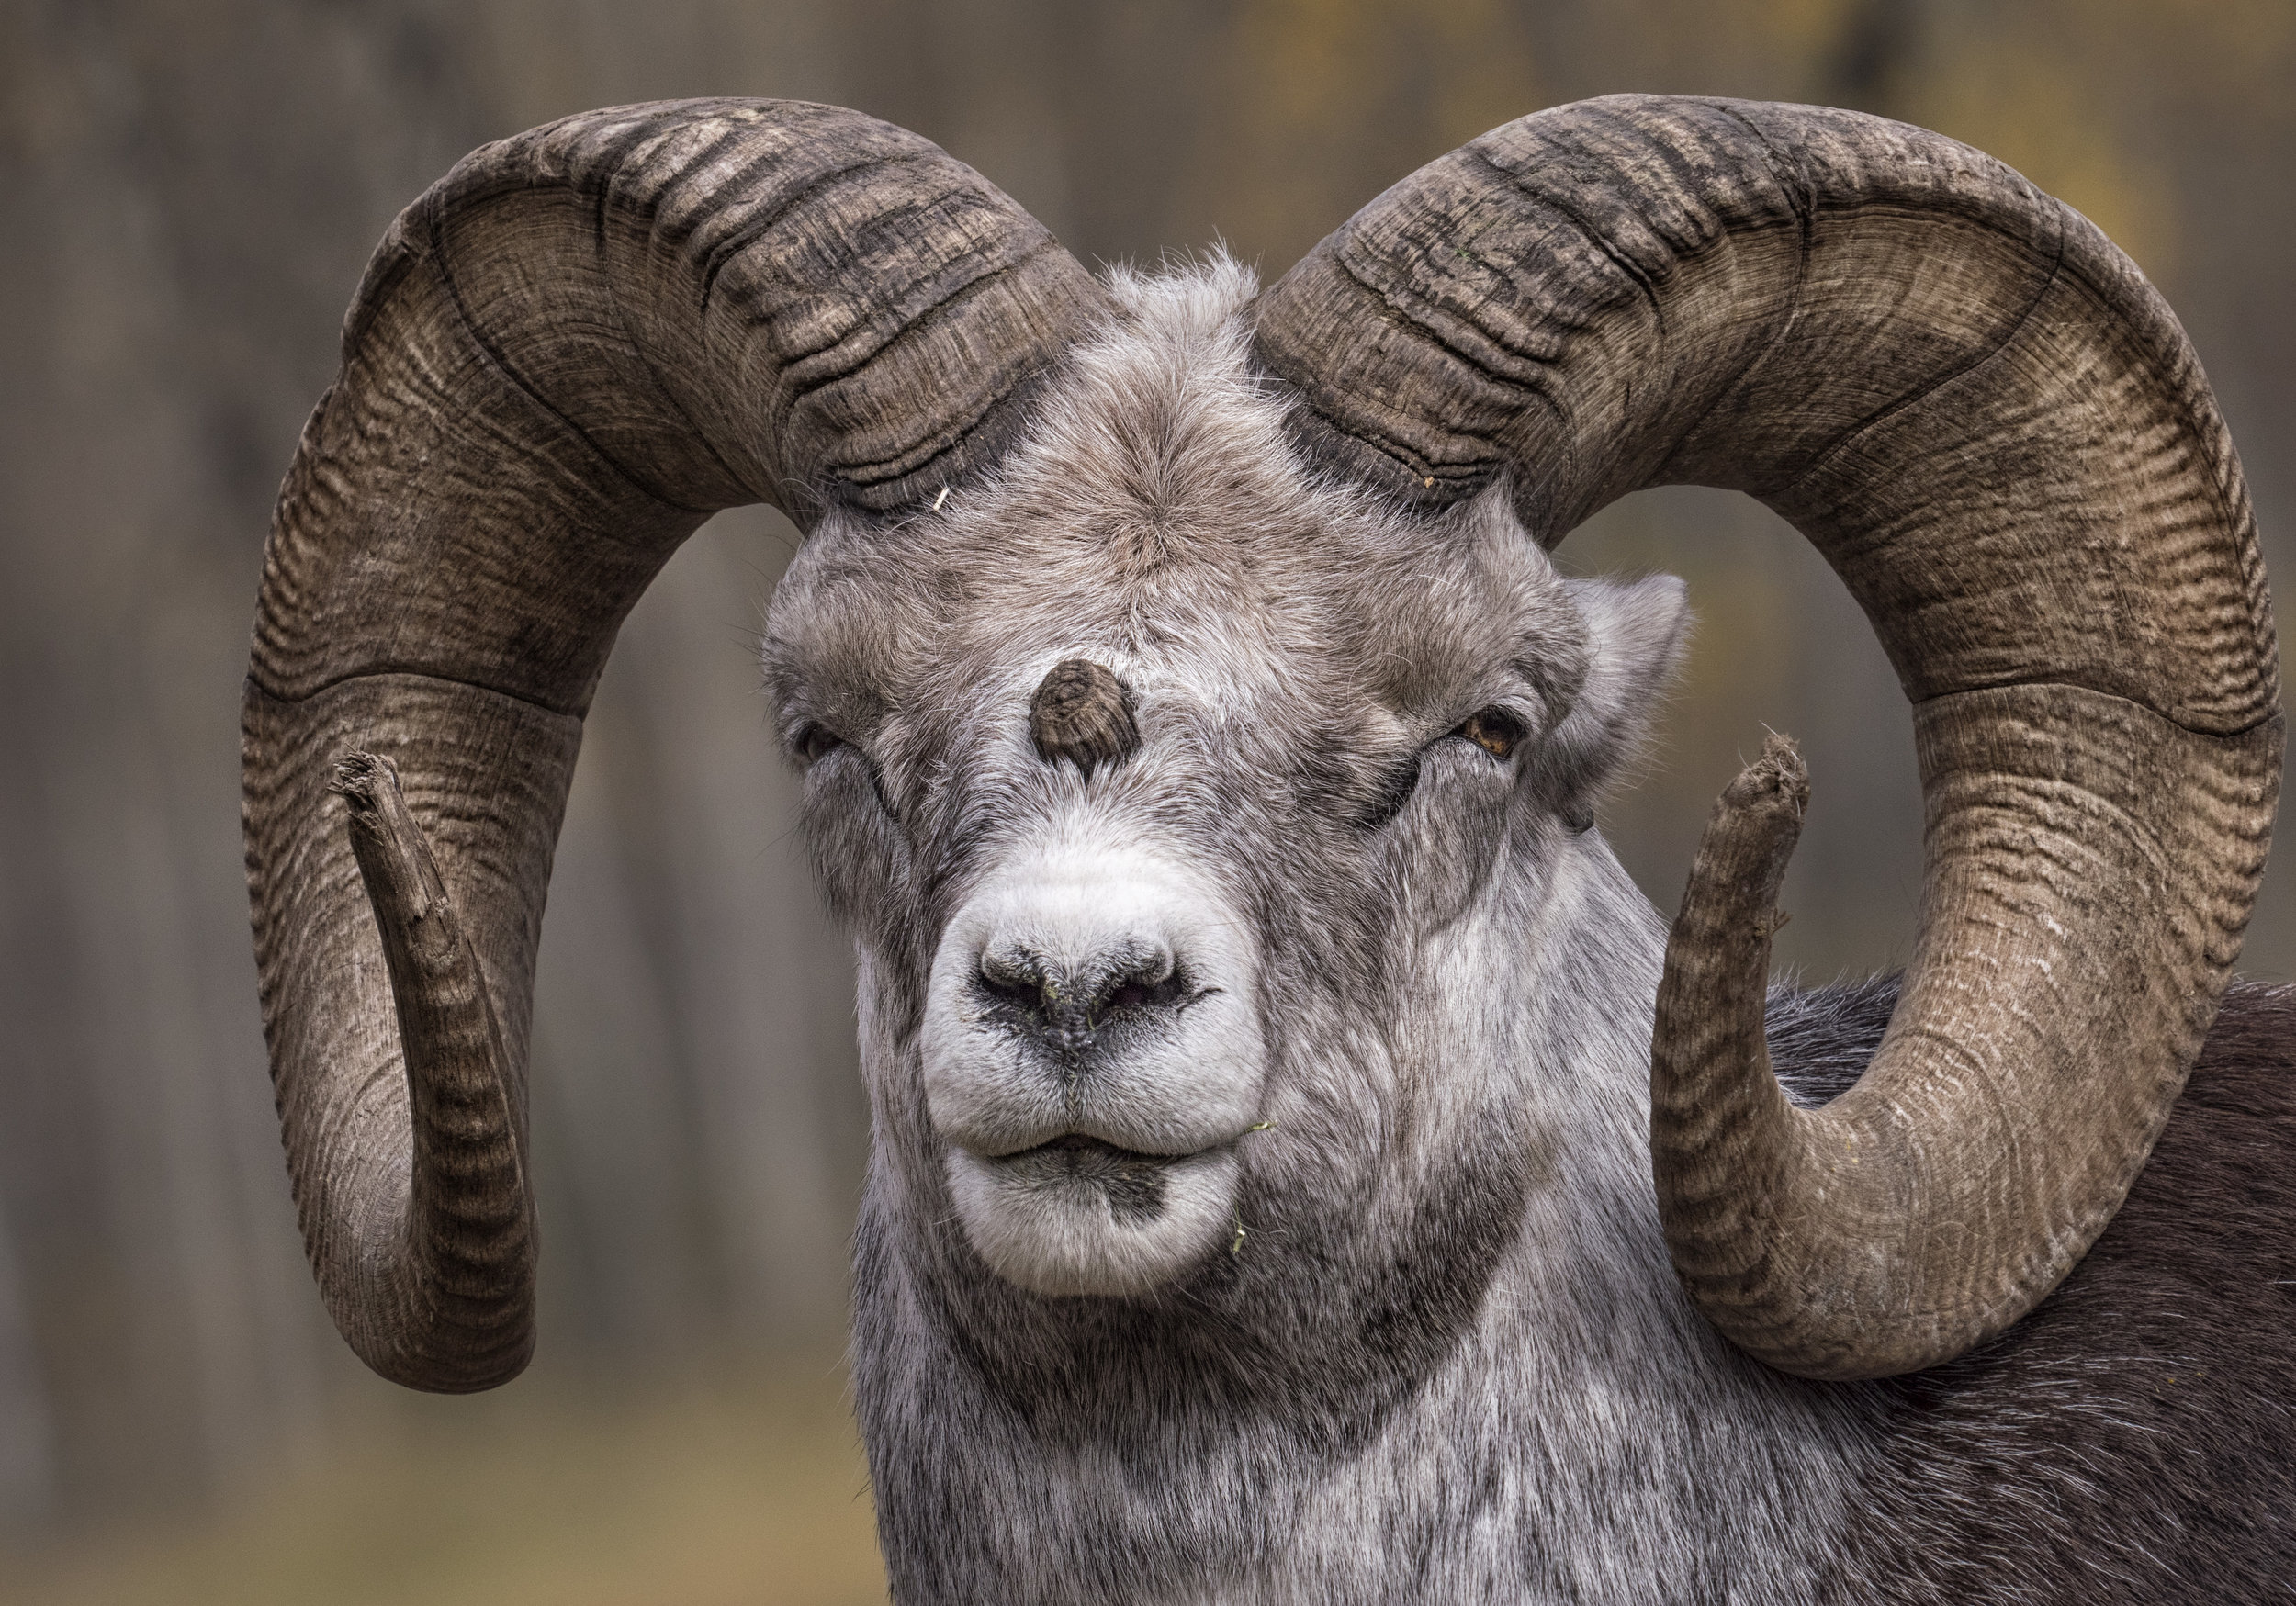 Sheep portrait in Yukon by Chris Pepper